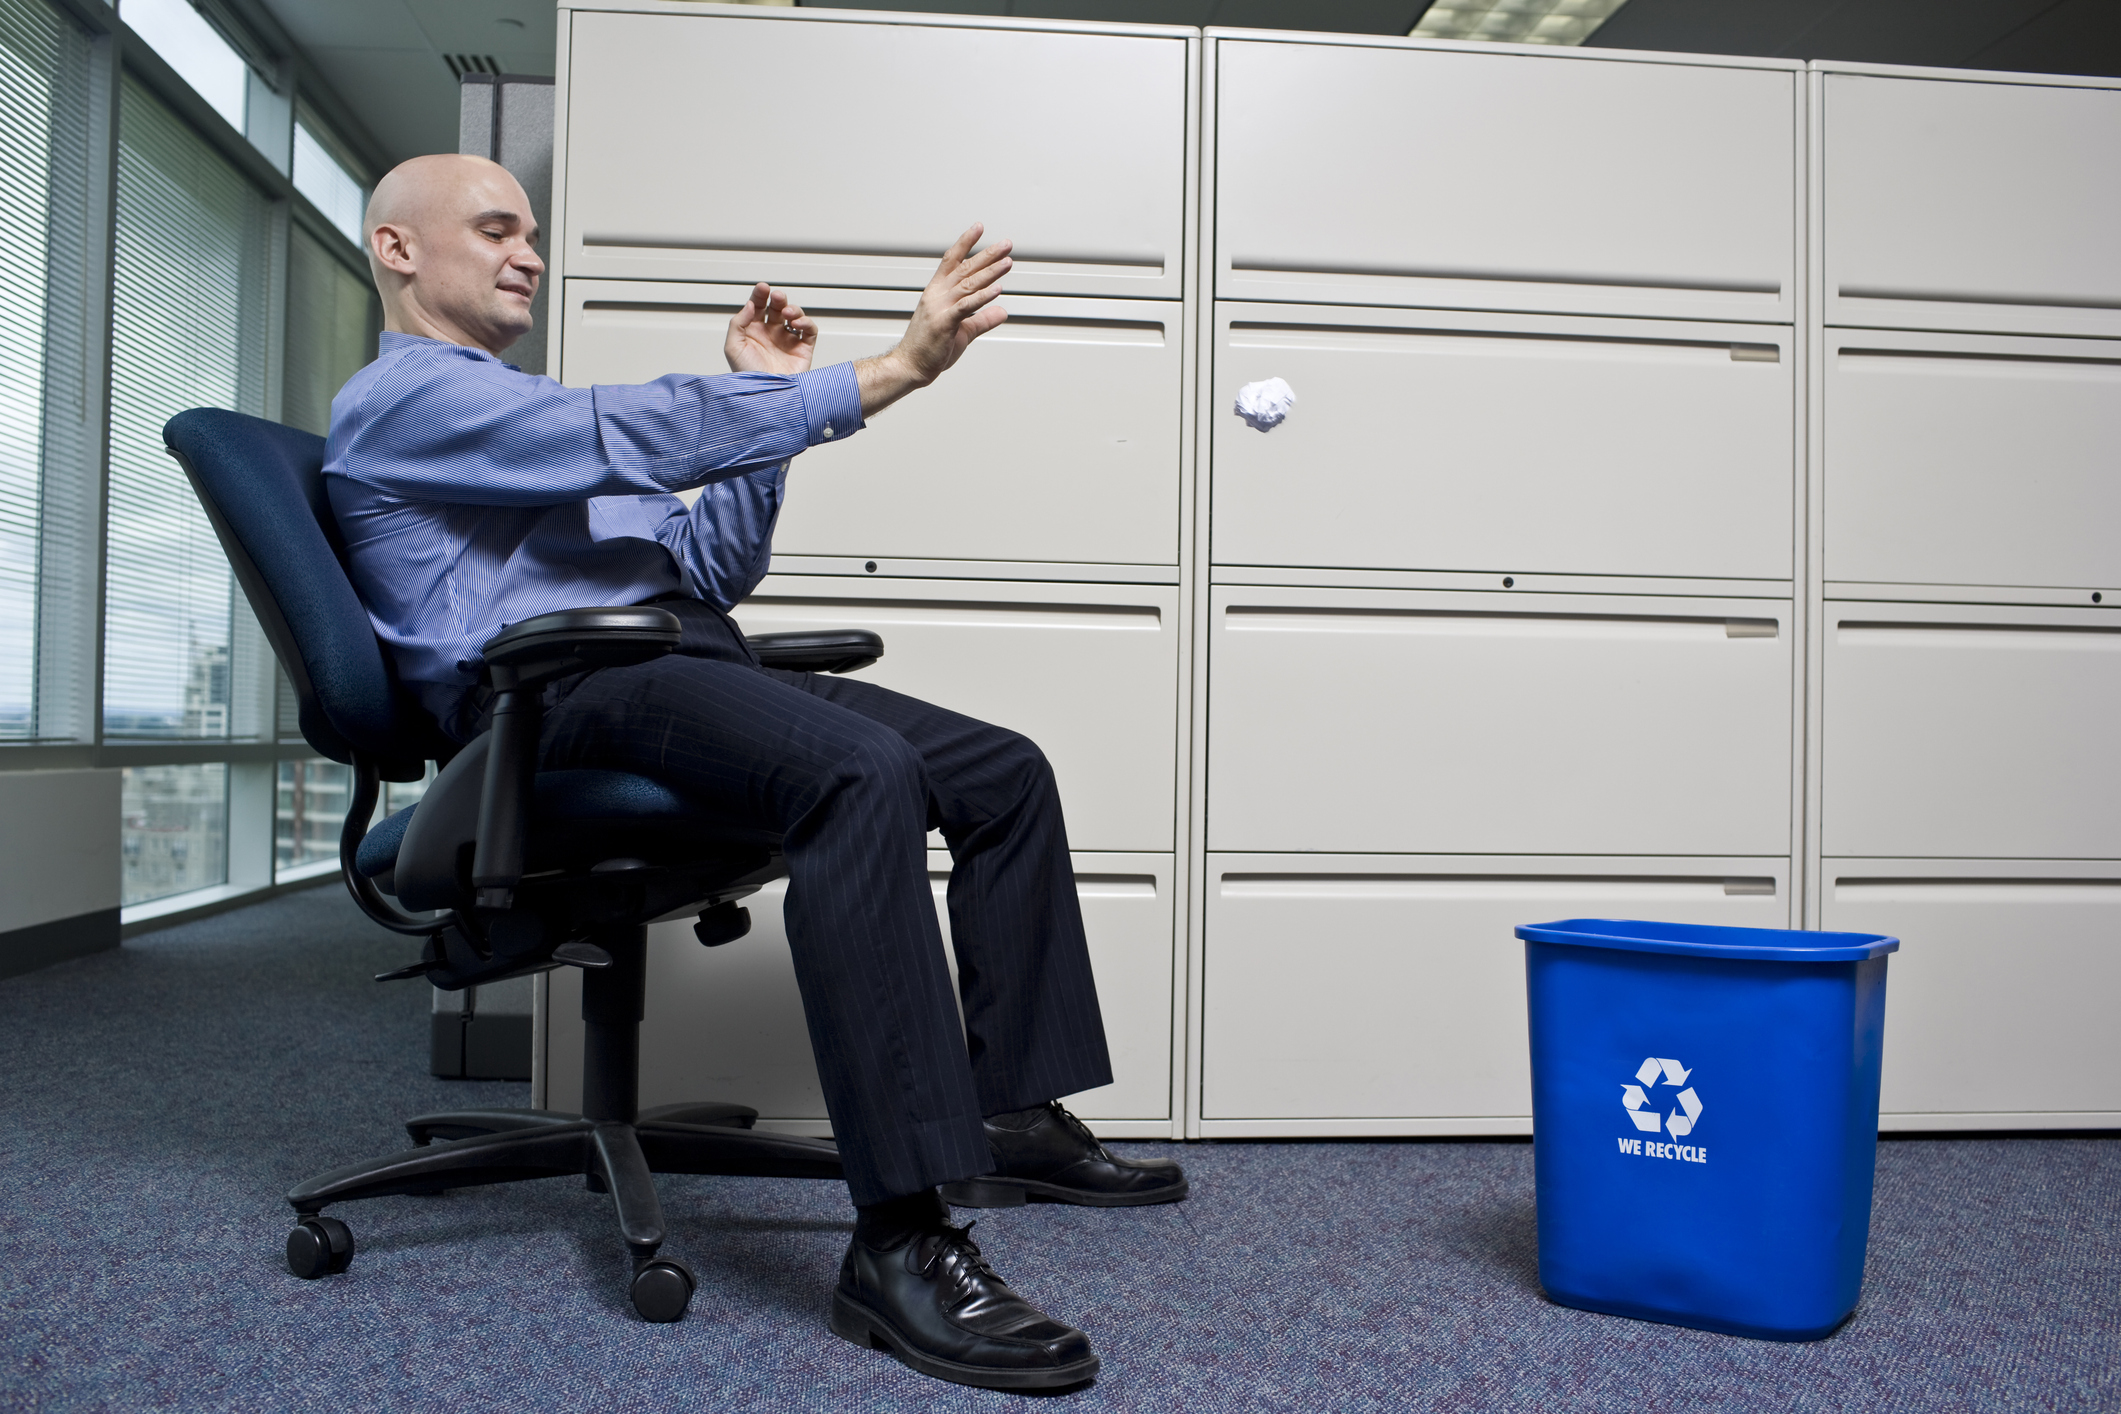 waste challenge - position bin near desk